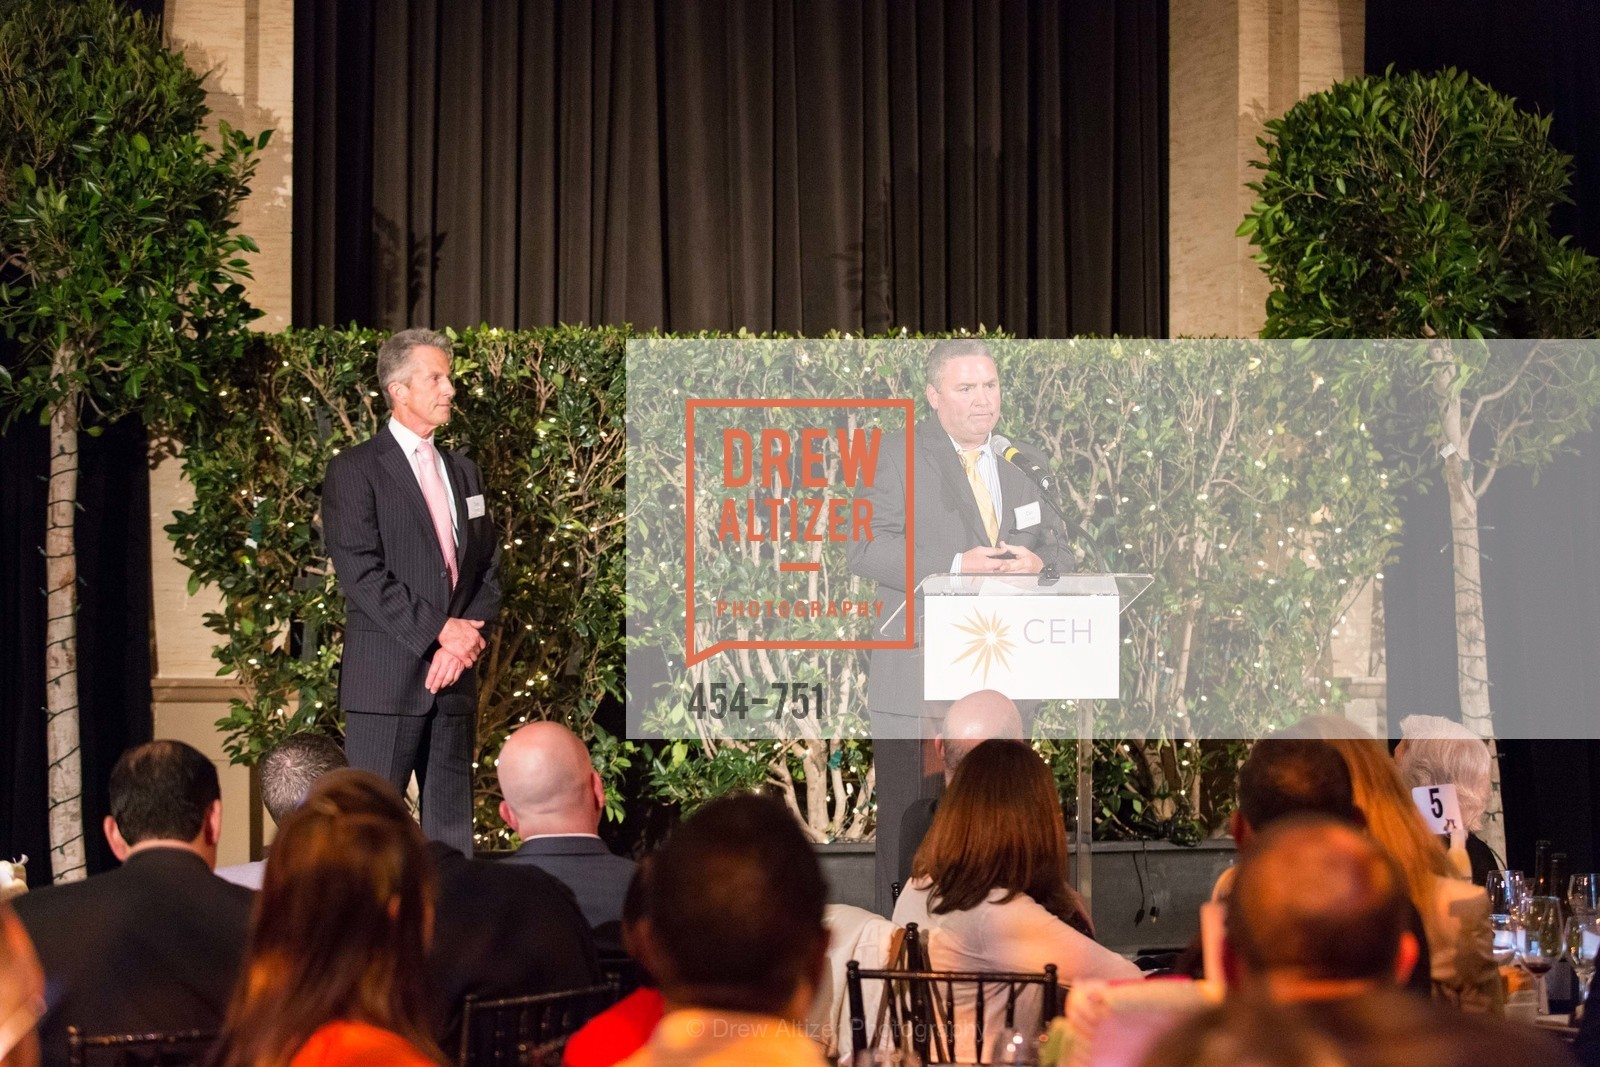 Tony Stefani, Dan Dunnigan, CENTER FOR ENVIRONMENTAL HEALTH (CEH) 2015 Gala, Bently Reserve, May 28th, 2015,Drew Altizer, Drew Altizer Photography, full-service agency, private events, San Francisco photographer, photographer california